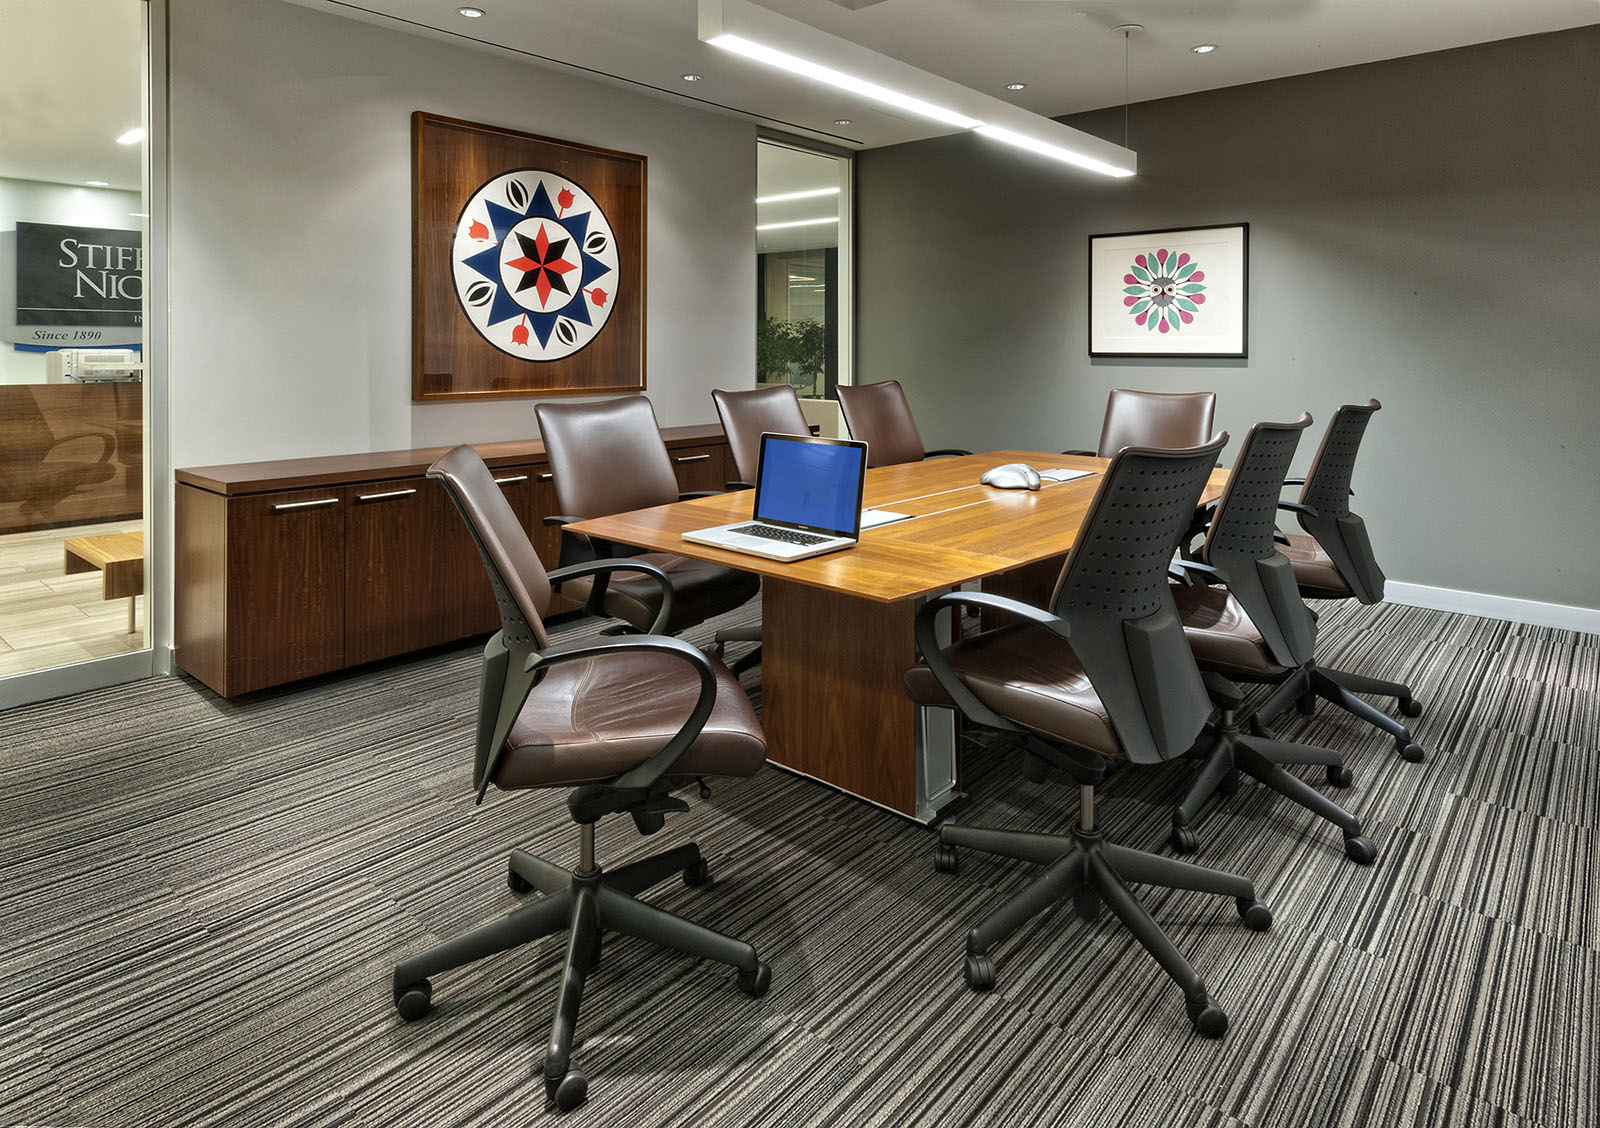 Meeting room in Stifel offices, Toronto, Ontario